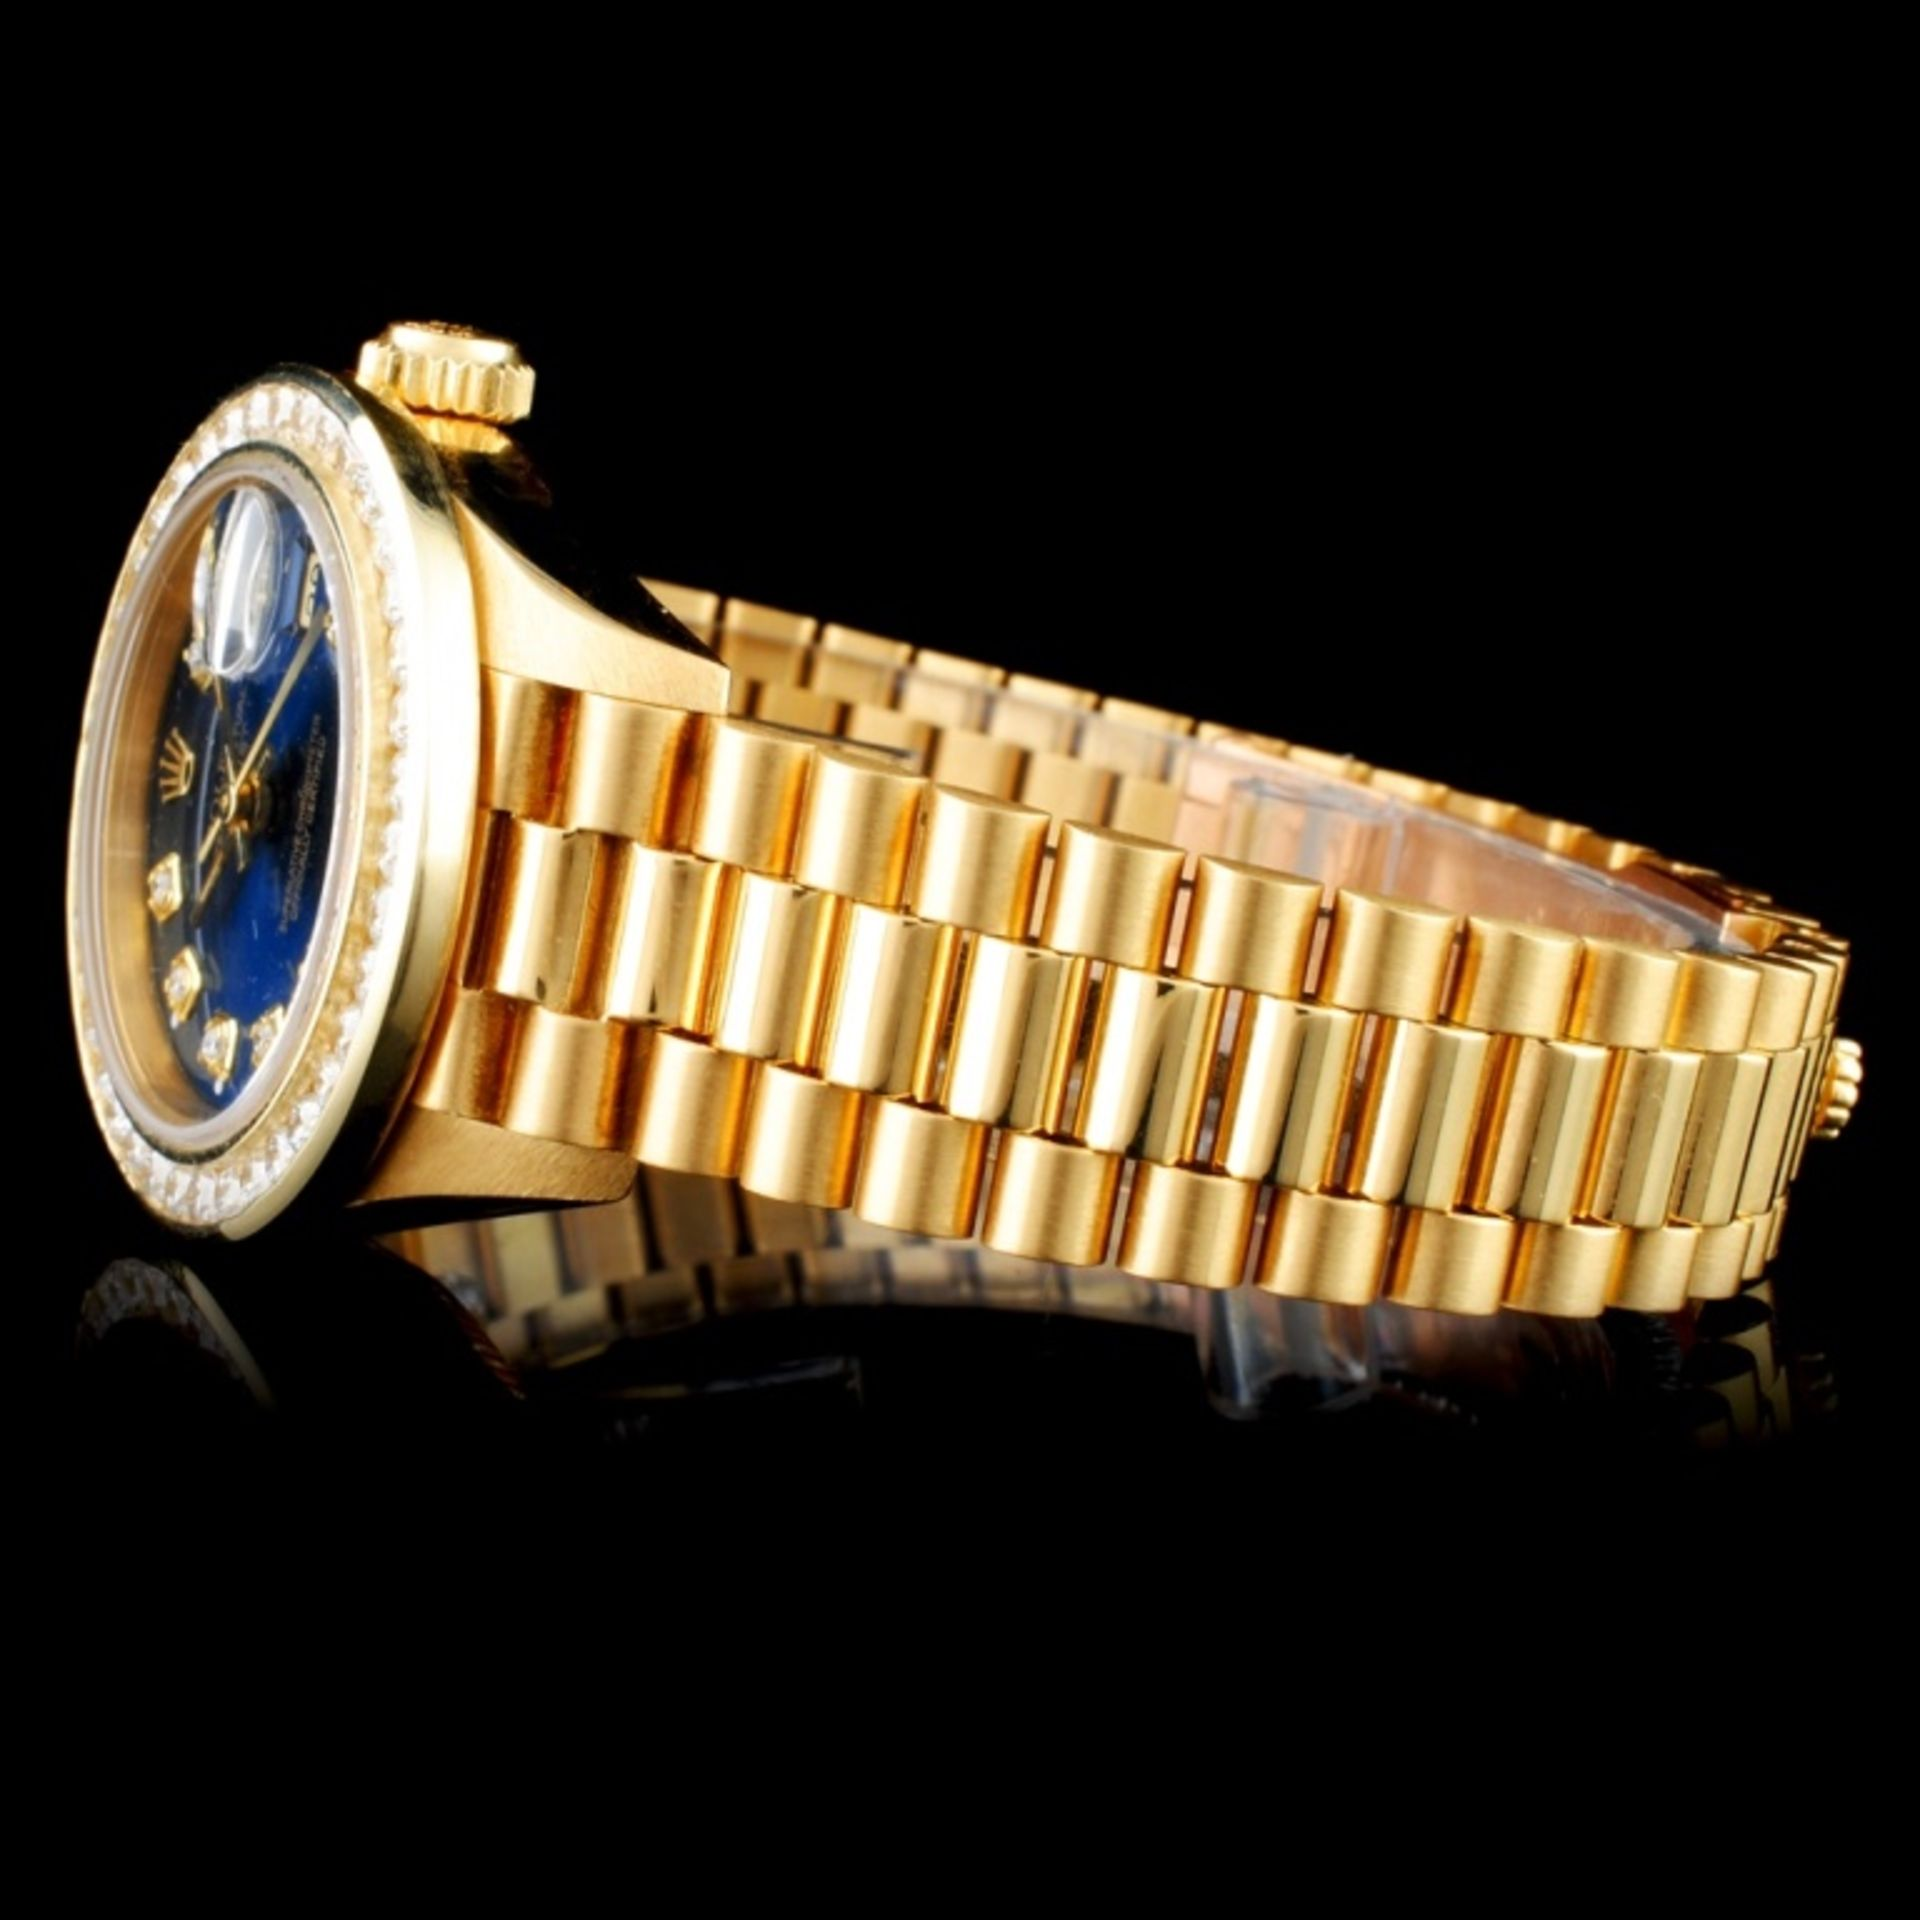 Rolex Presidential Diamond Ladies Watch - Image 3 of 6